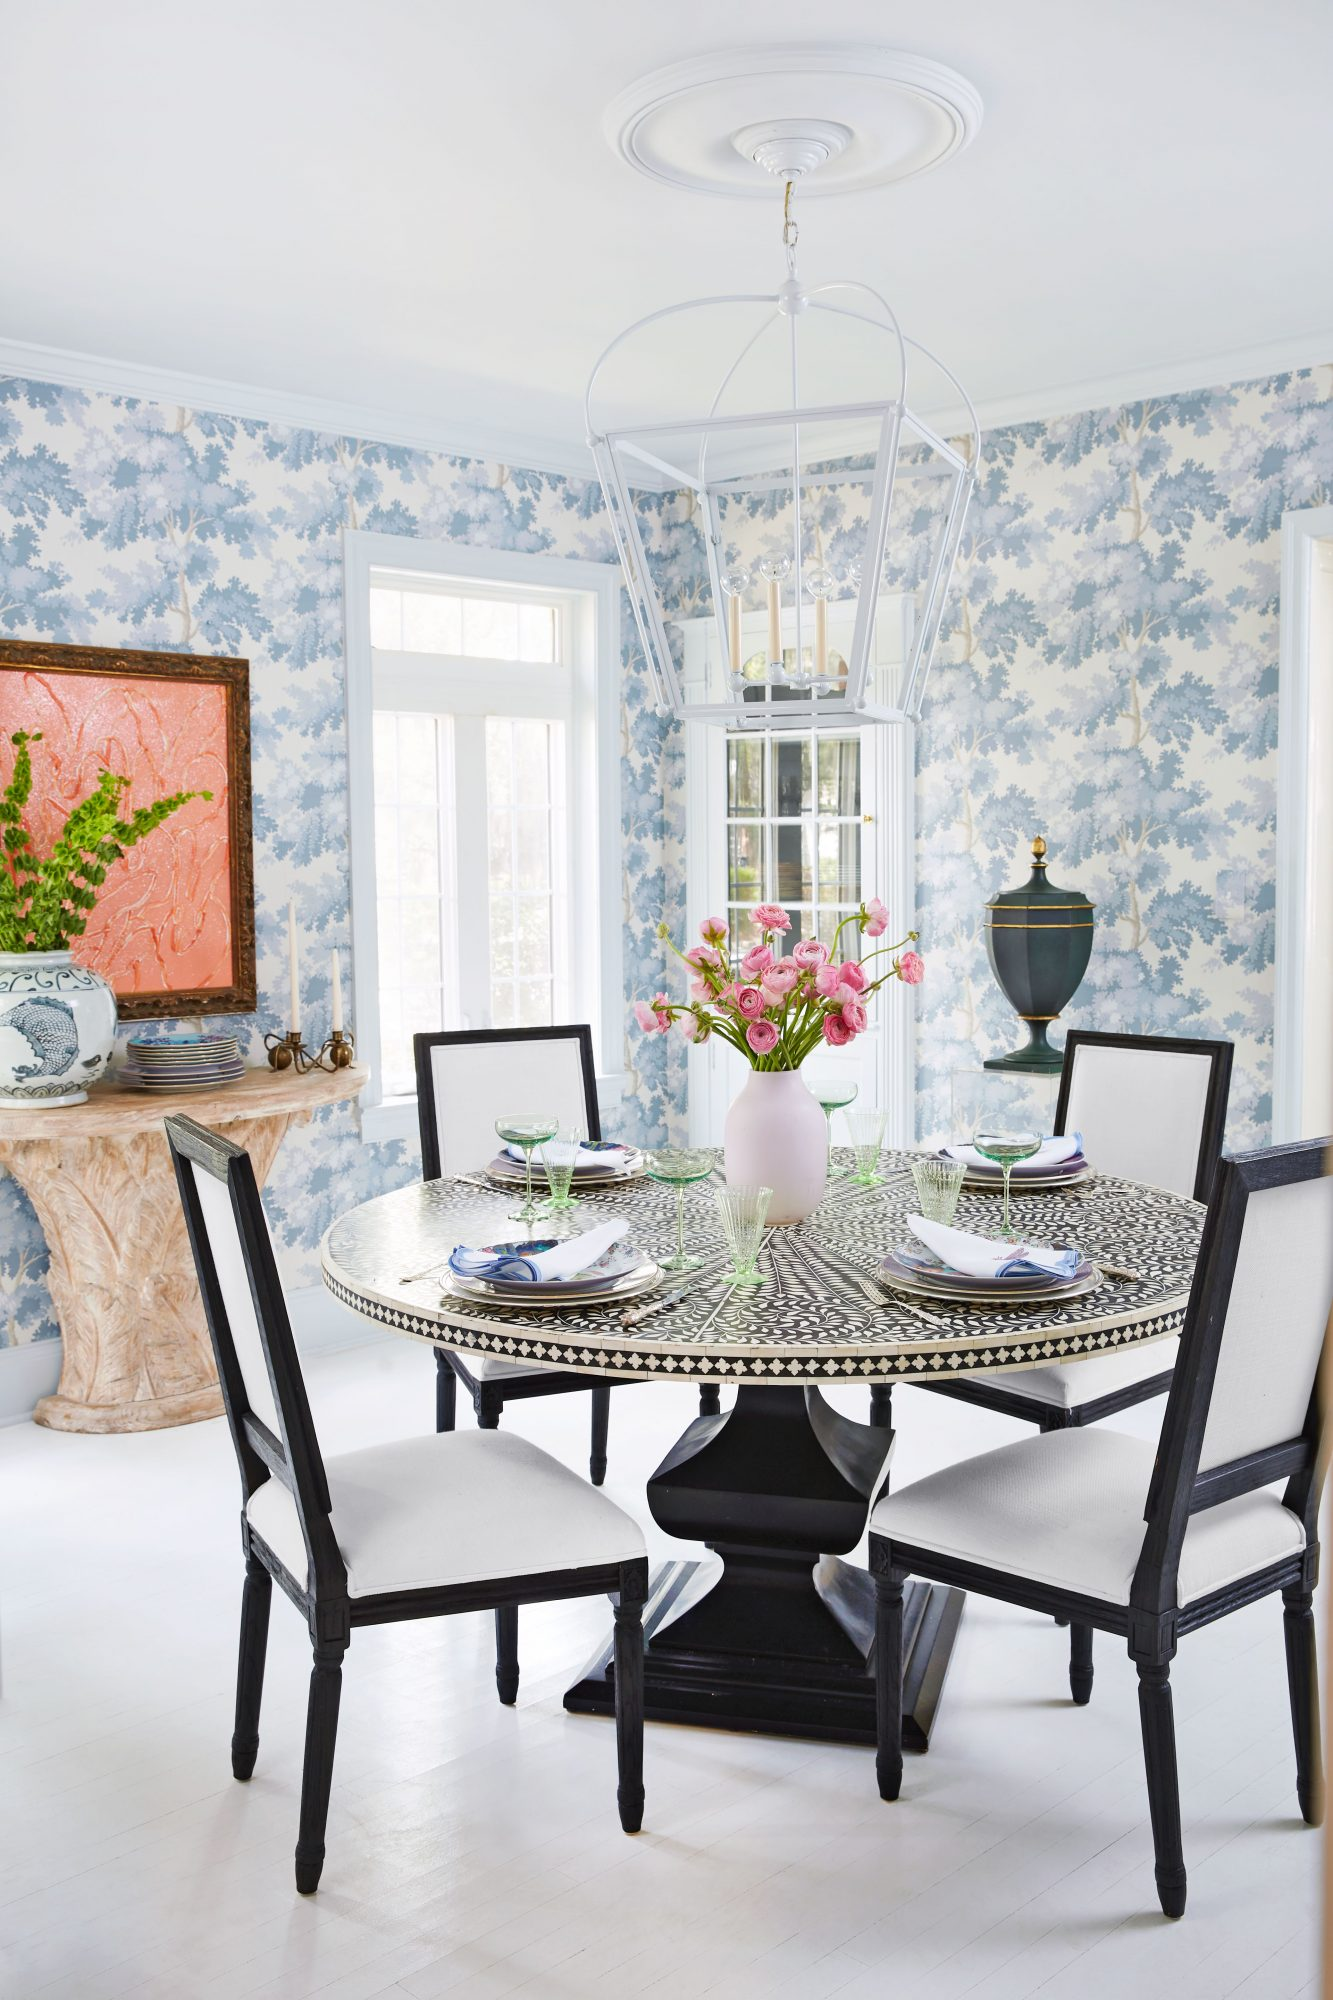 Formal dining room with light blue and white wallpaper, black round dining table, and black and white dining chairs